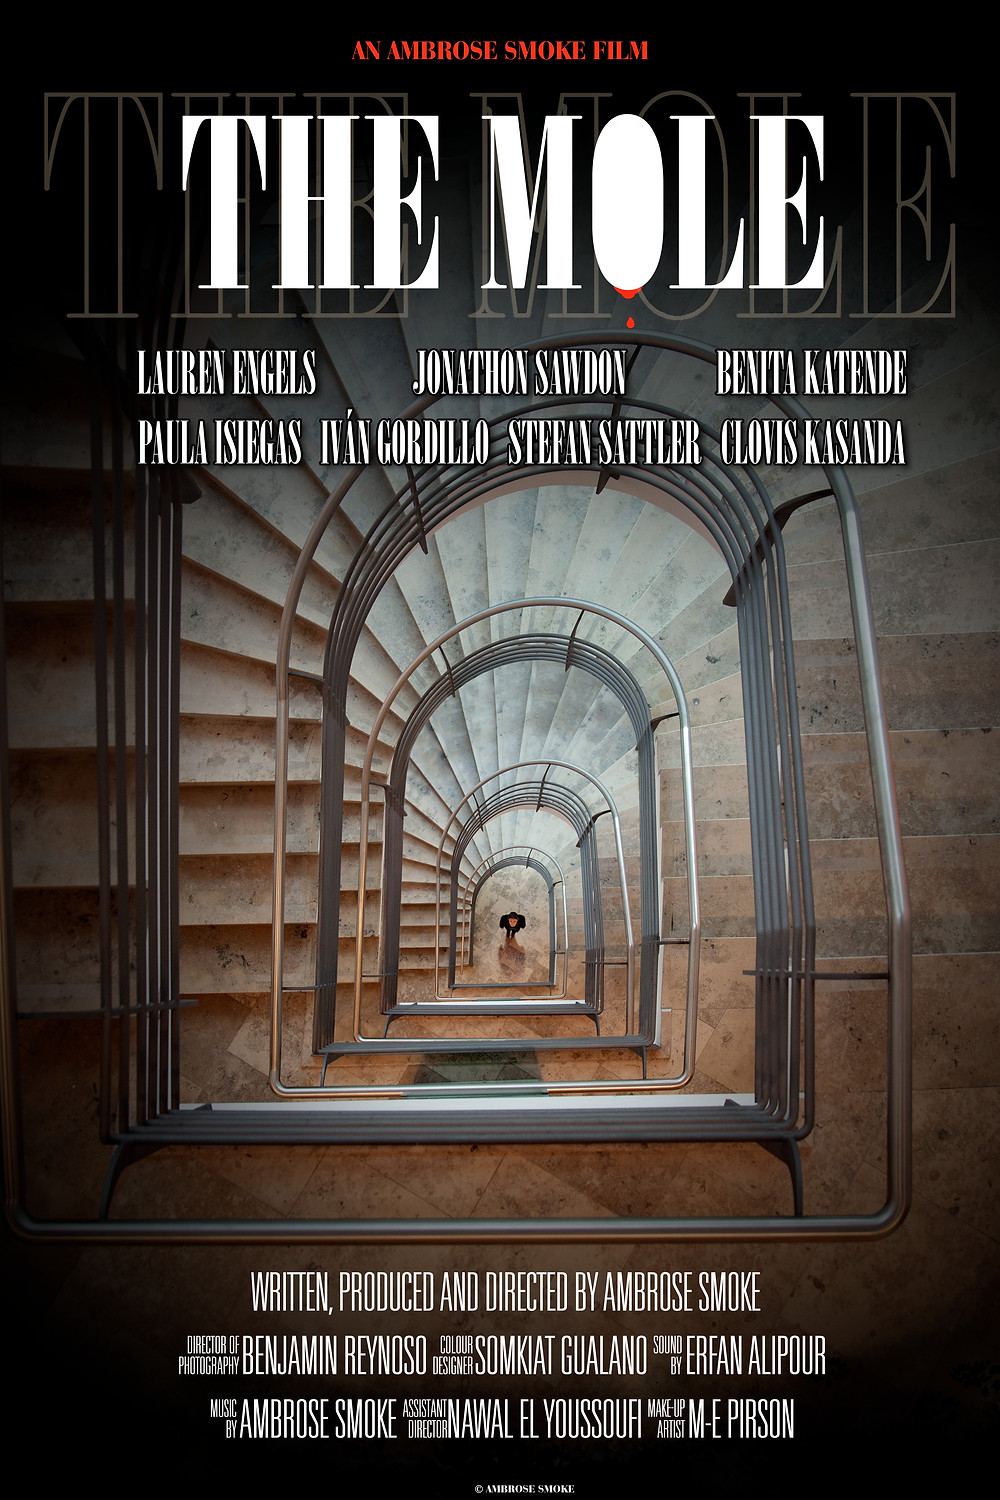 Poster for The Mole showing character and staircase.